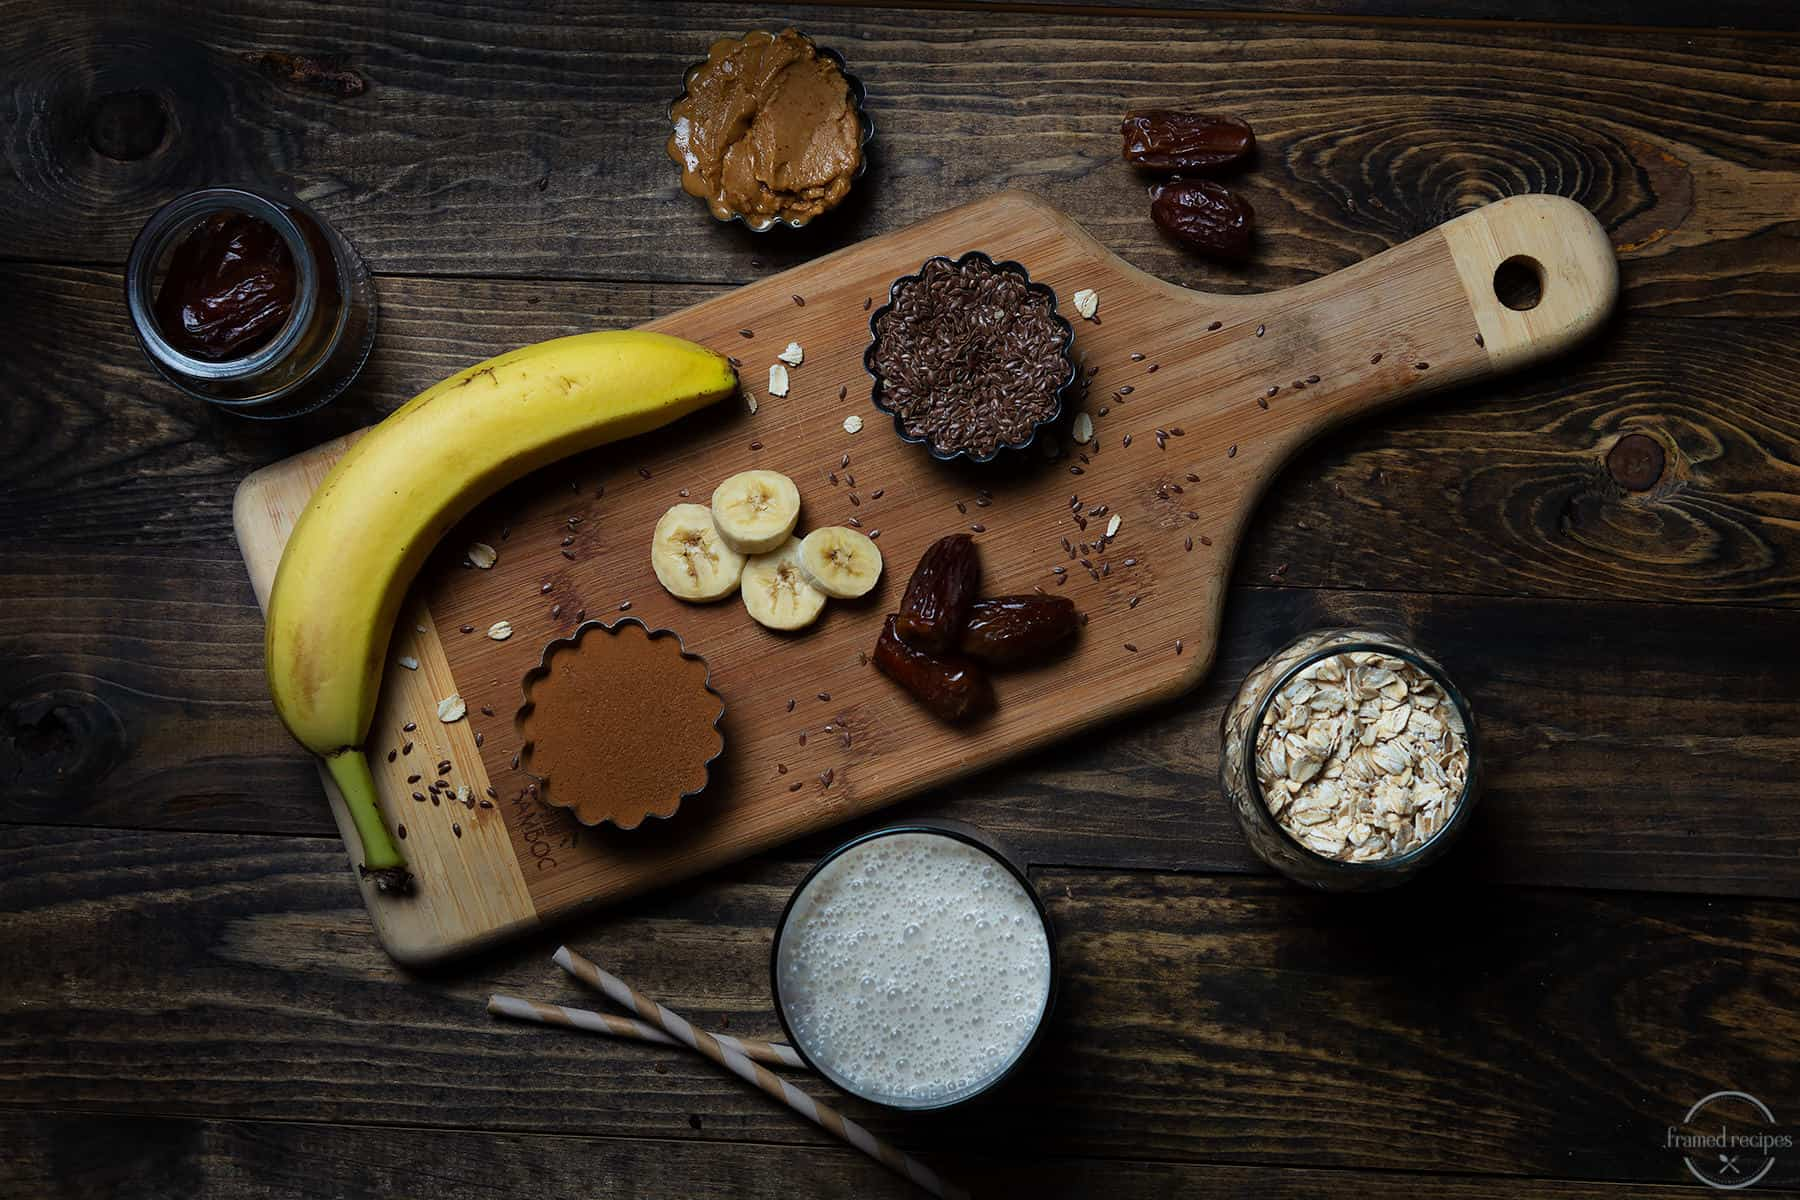 ingredients for roasted peanut butter smoothie - banana, flax seeds, pitted dates, oats, peanut butter & milk.